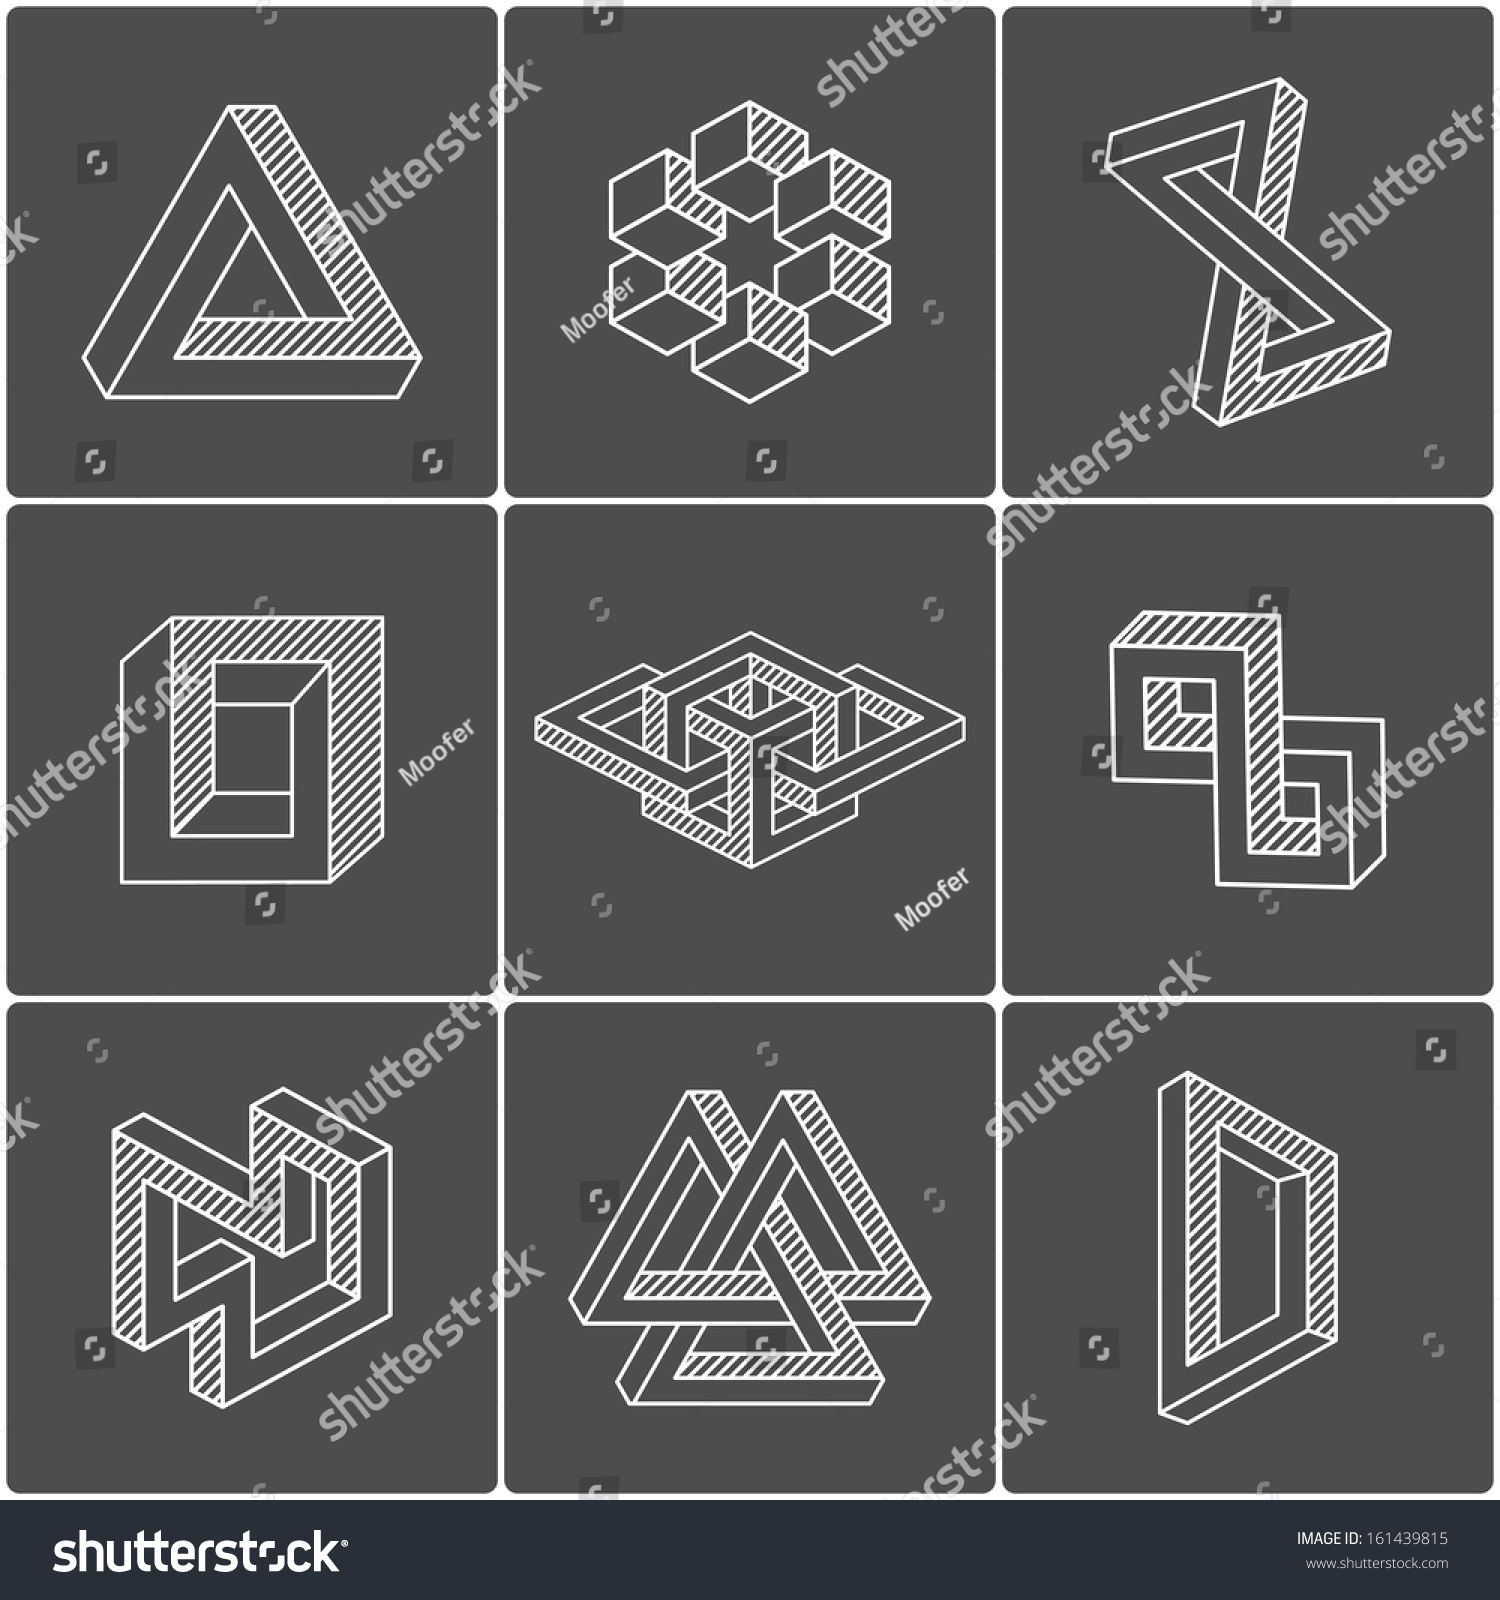 optical illusion geometric shapes vector identity shutterstock elements